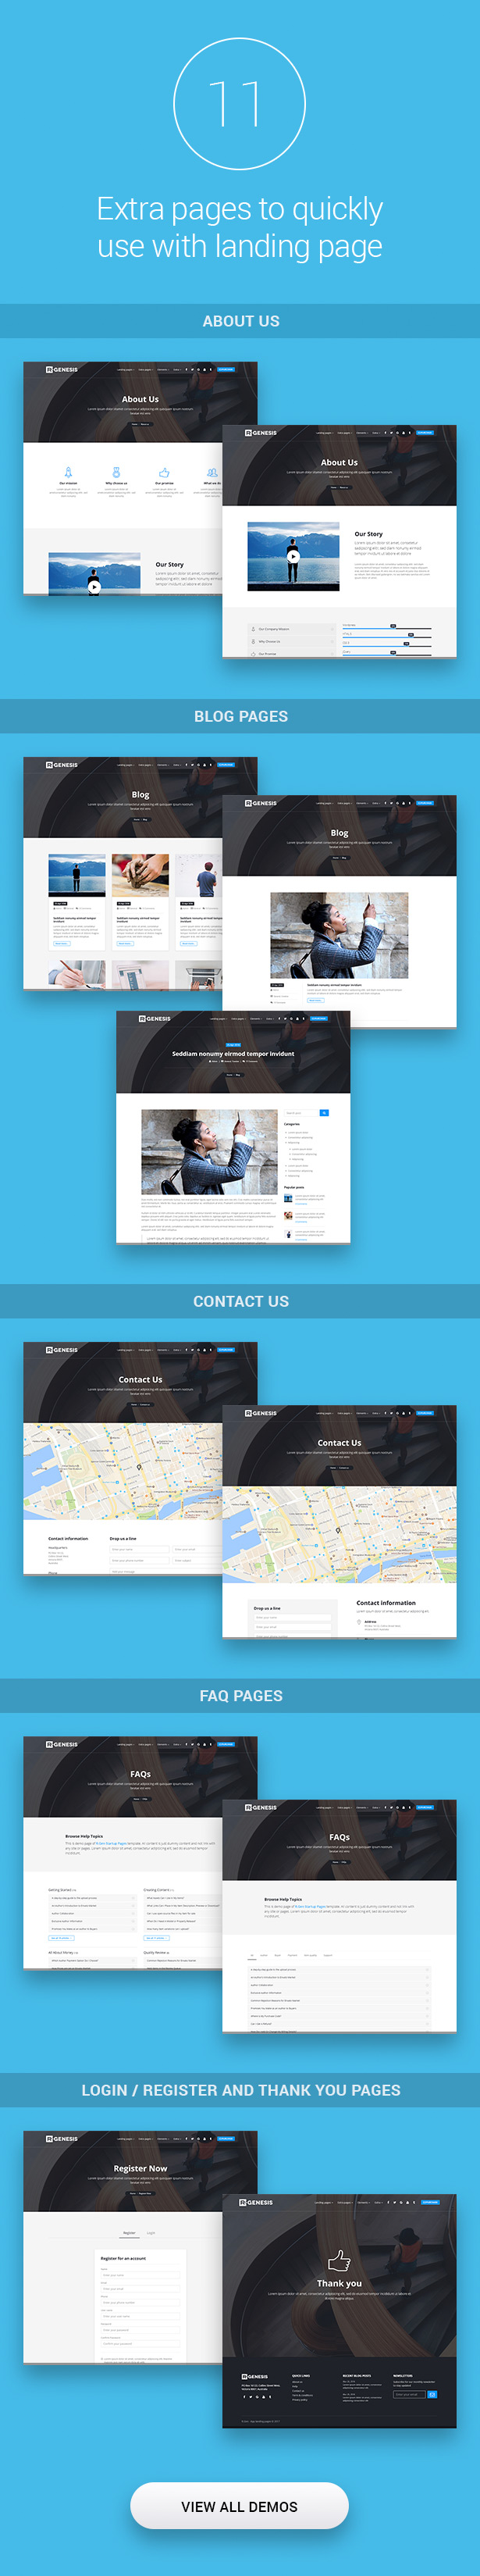 Startup Landing Pages - 3